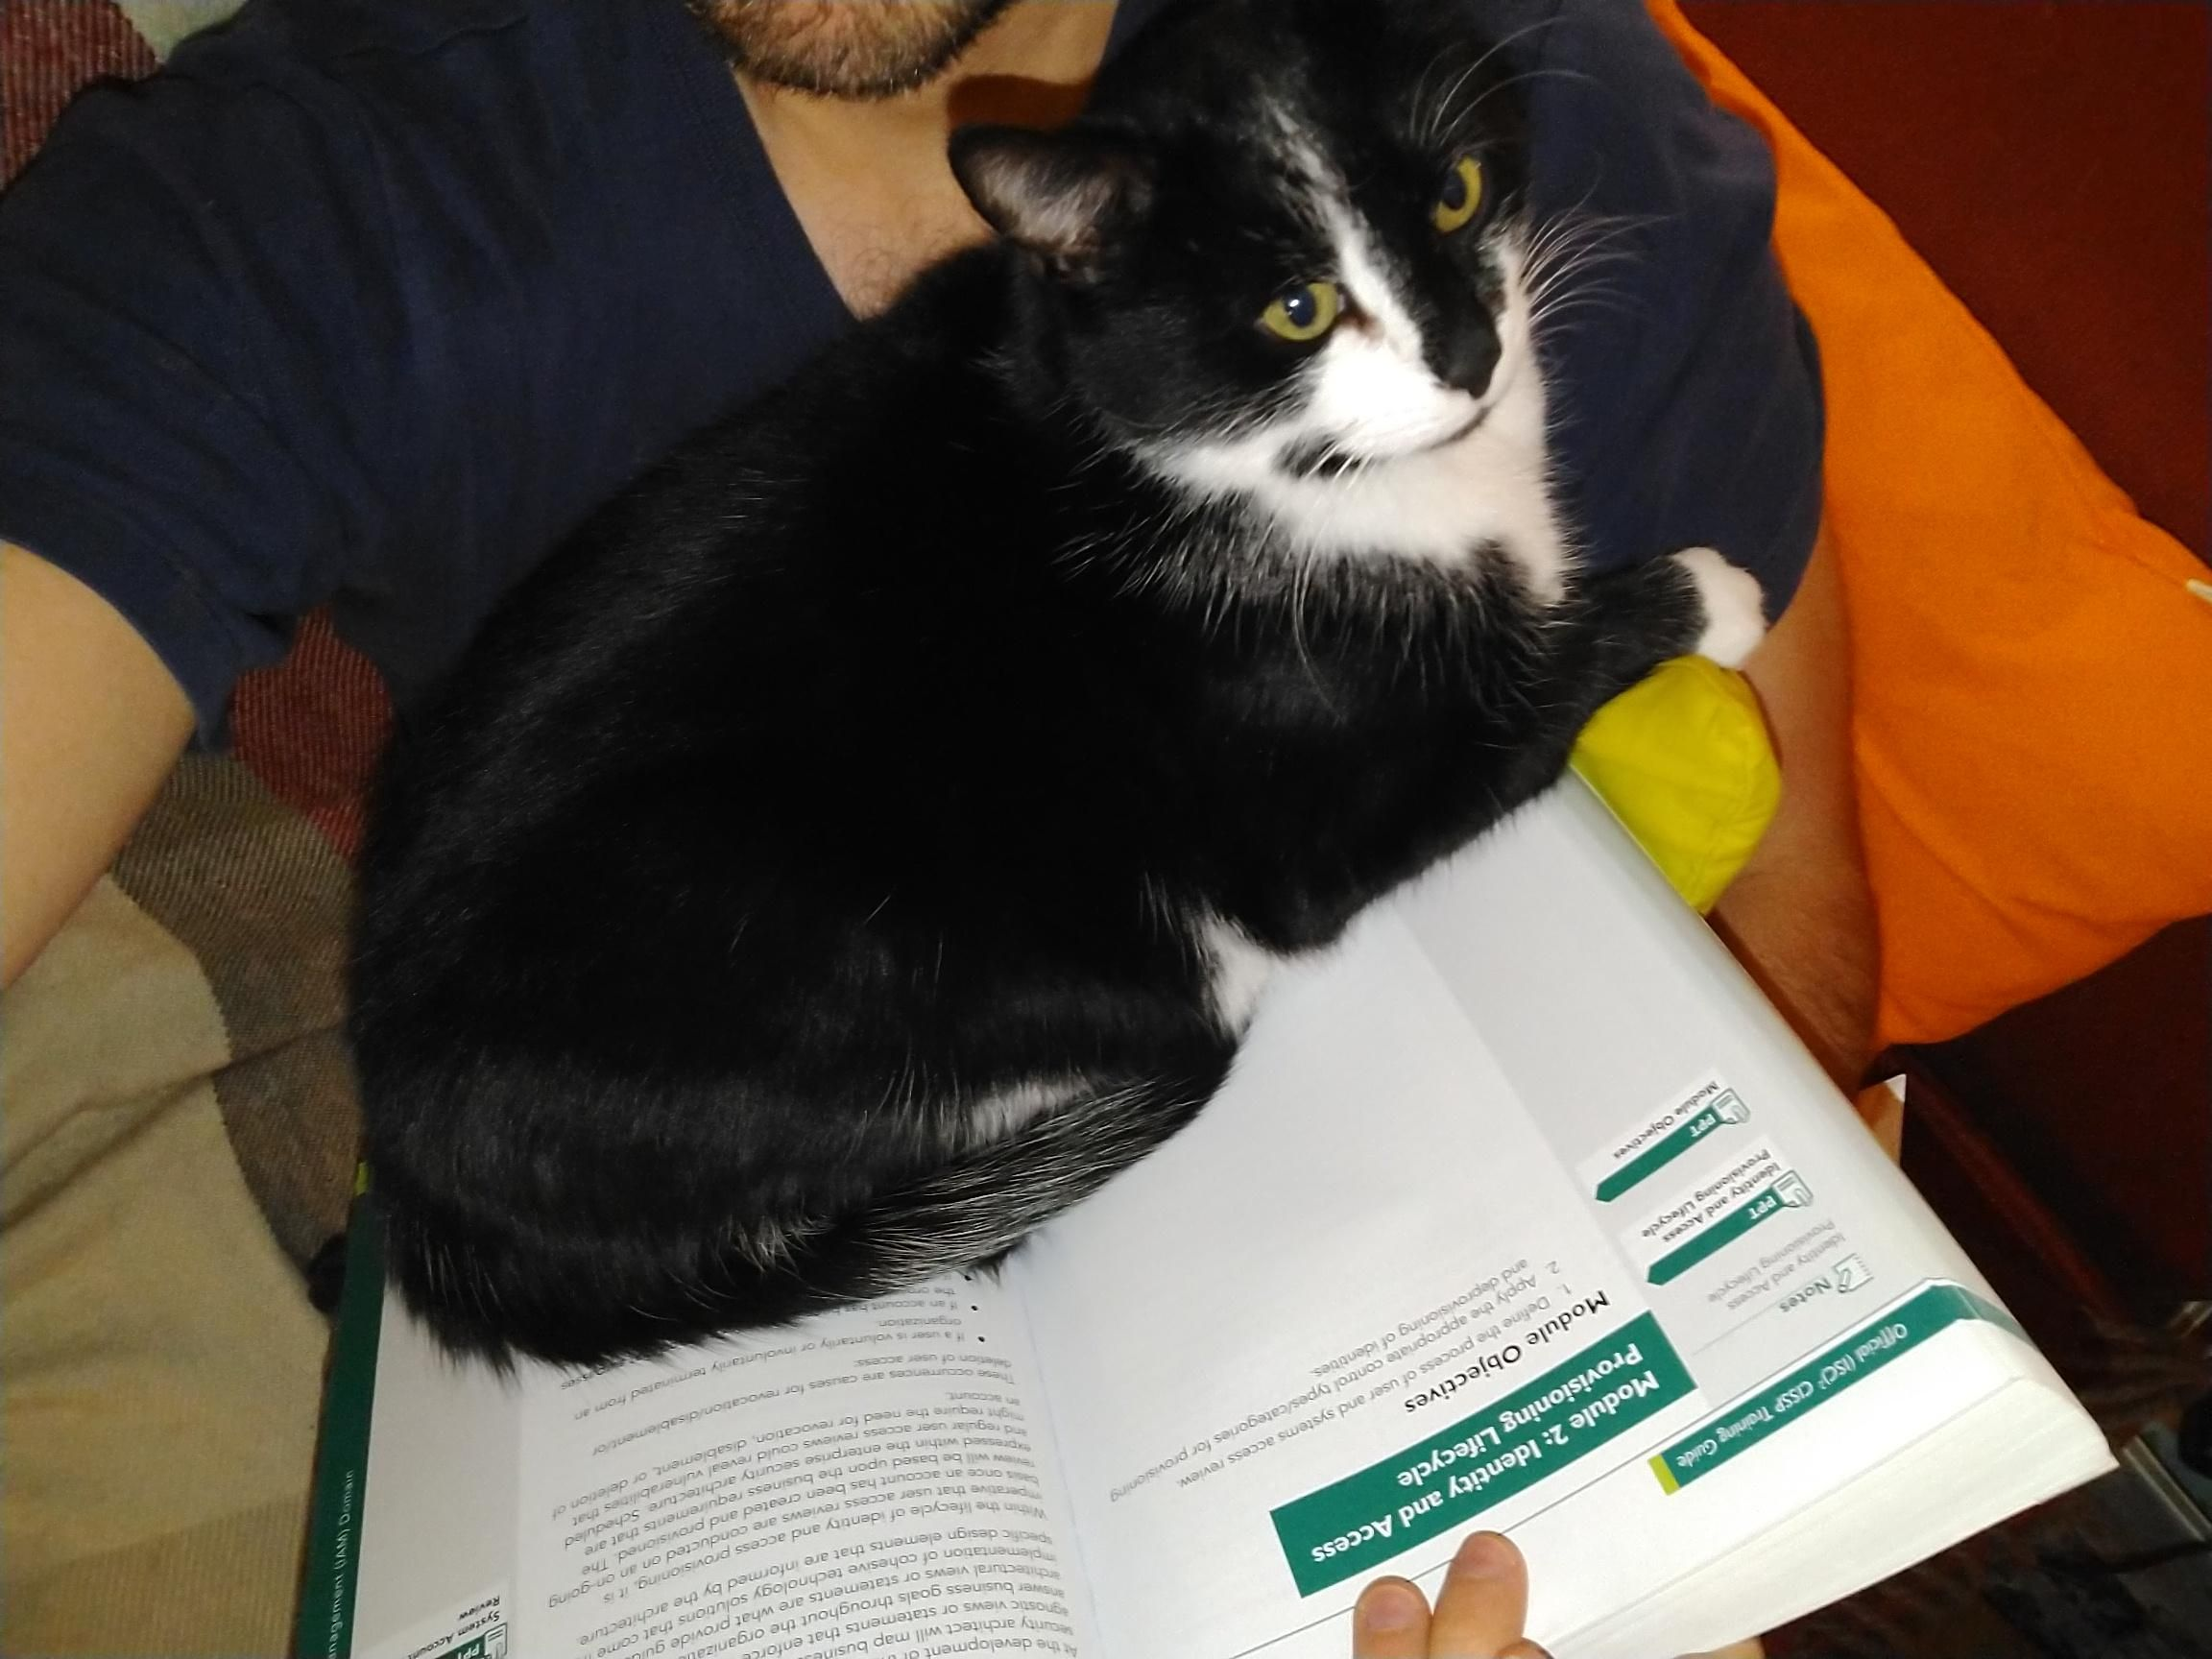 When You Re Trying To Study But Your Cat Decides You Are Giving To Much Attention To The Book Instead Of Him Cats Cats And Kittens Cat Photo